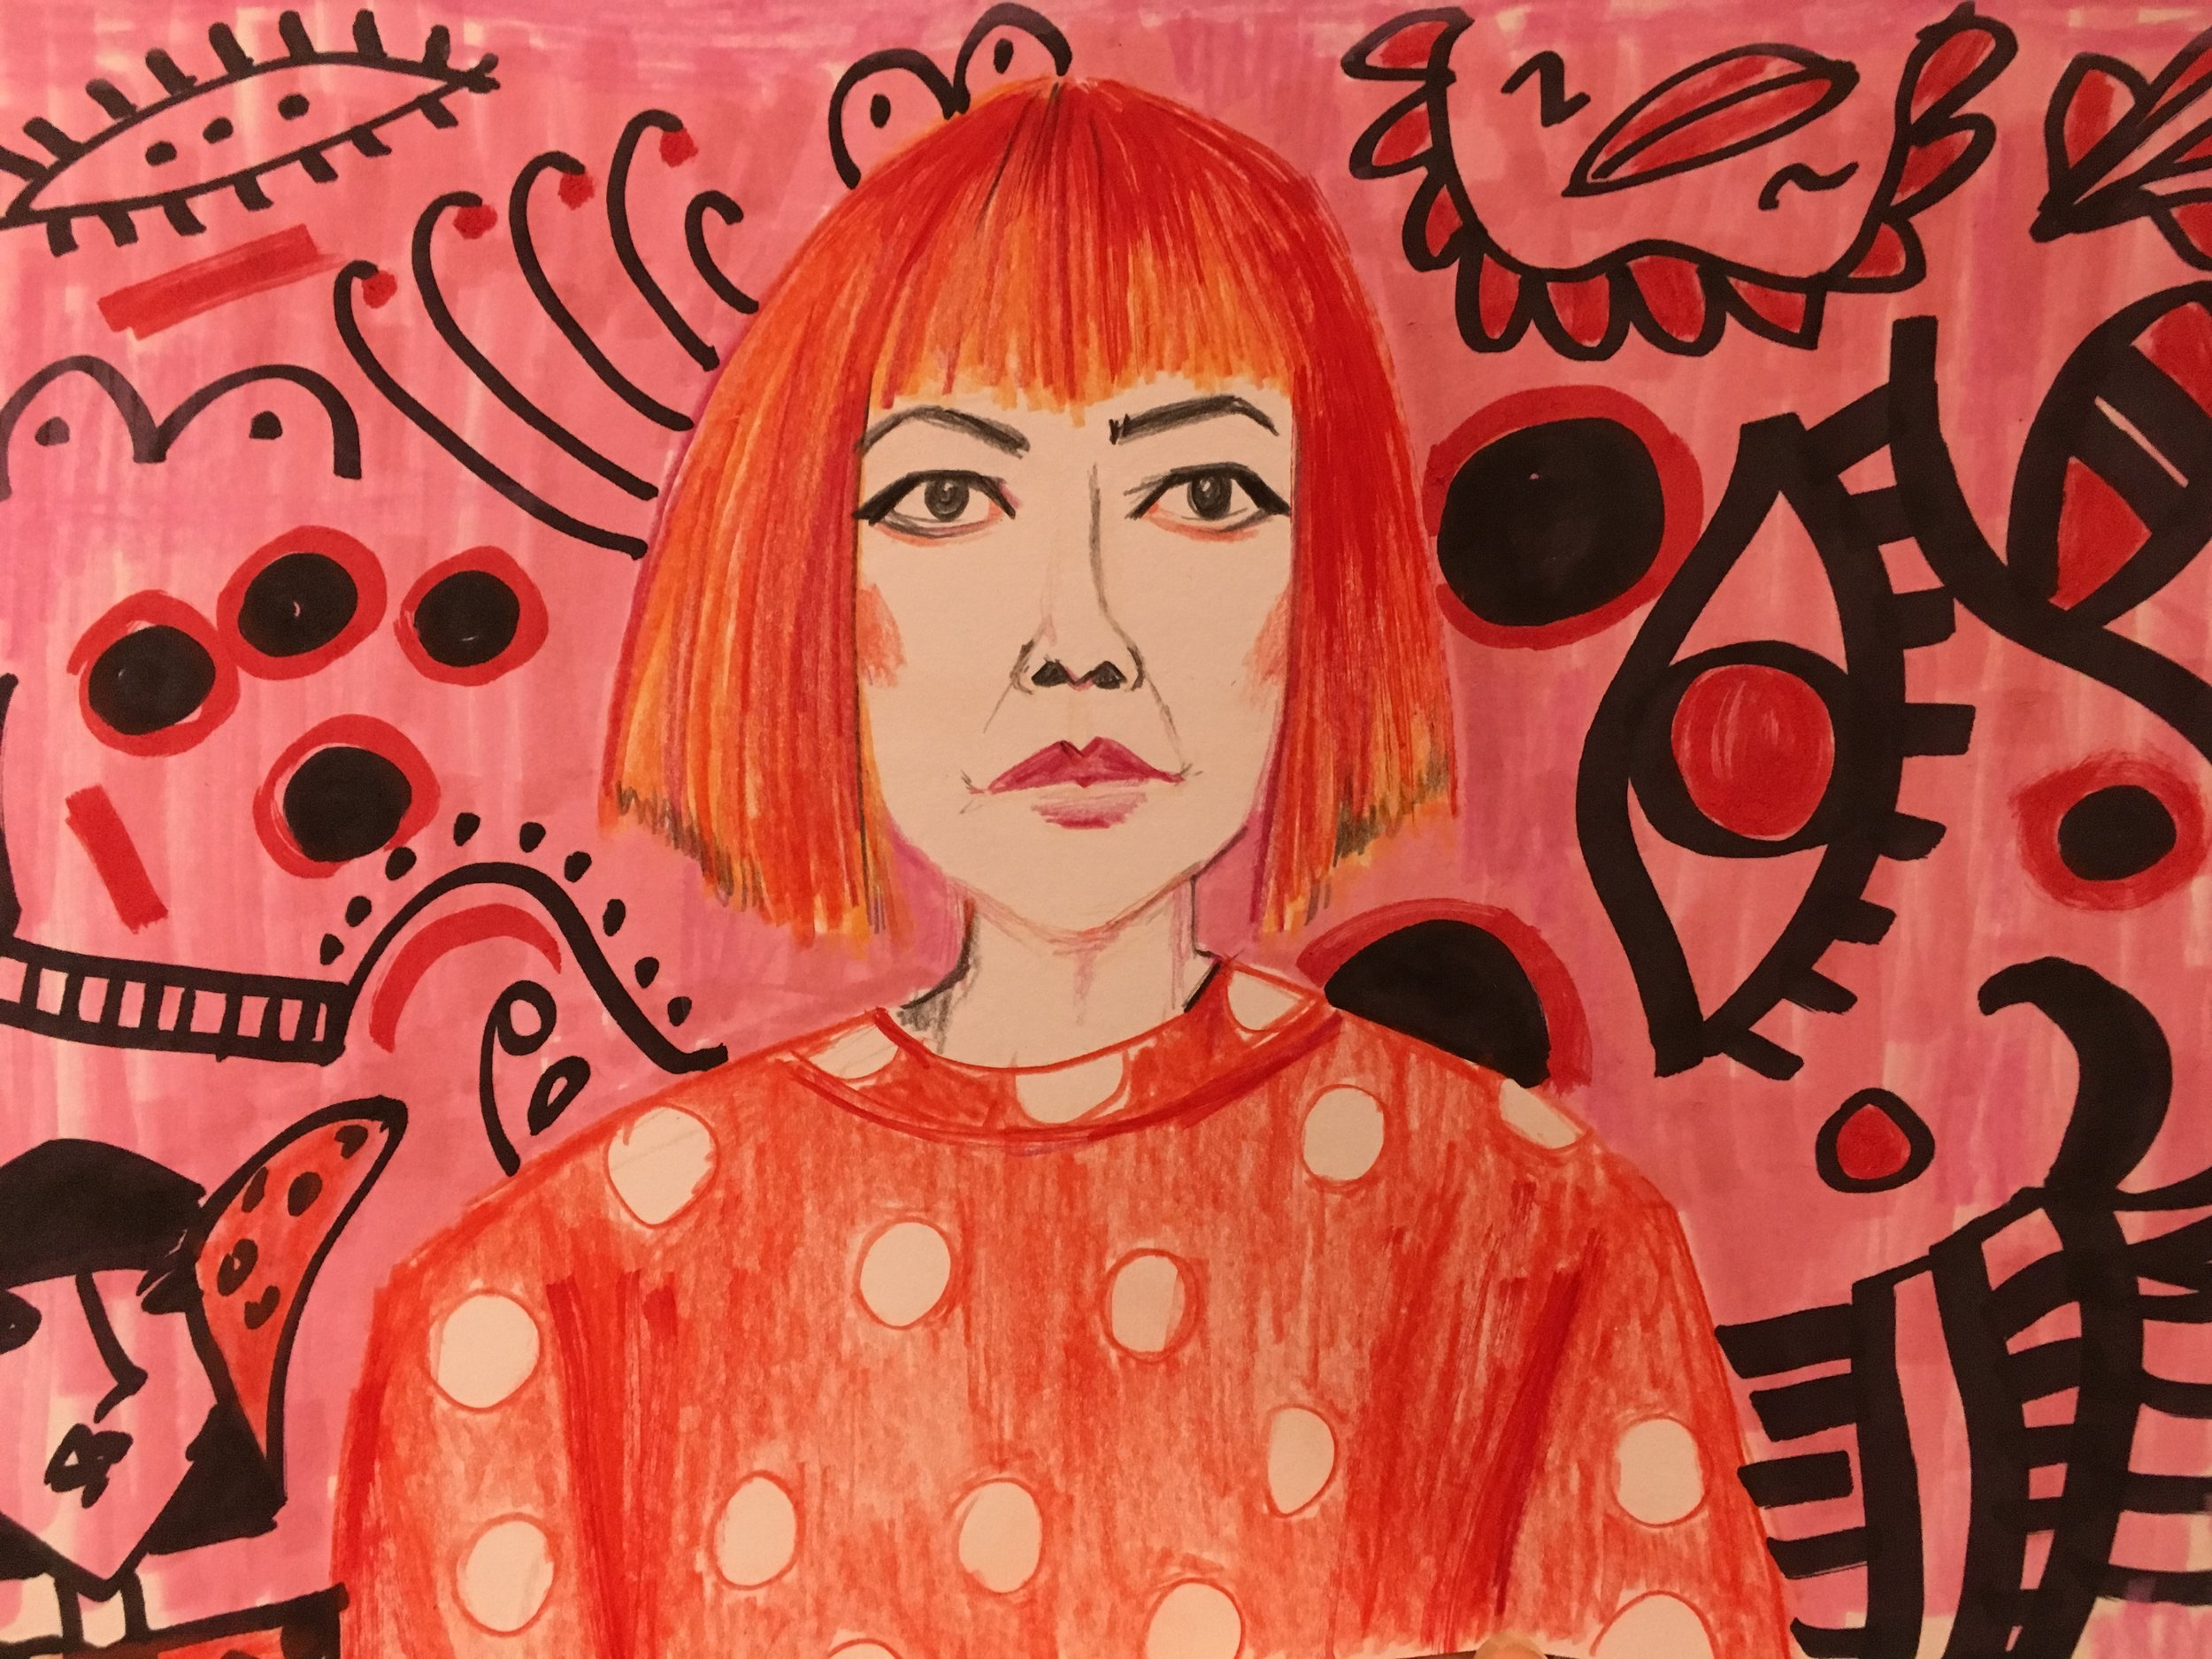 Week 2 Day 4: Draw something Kusama-inspired, or draw the woman herself!